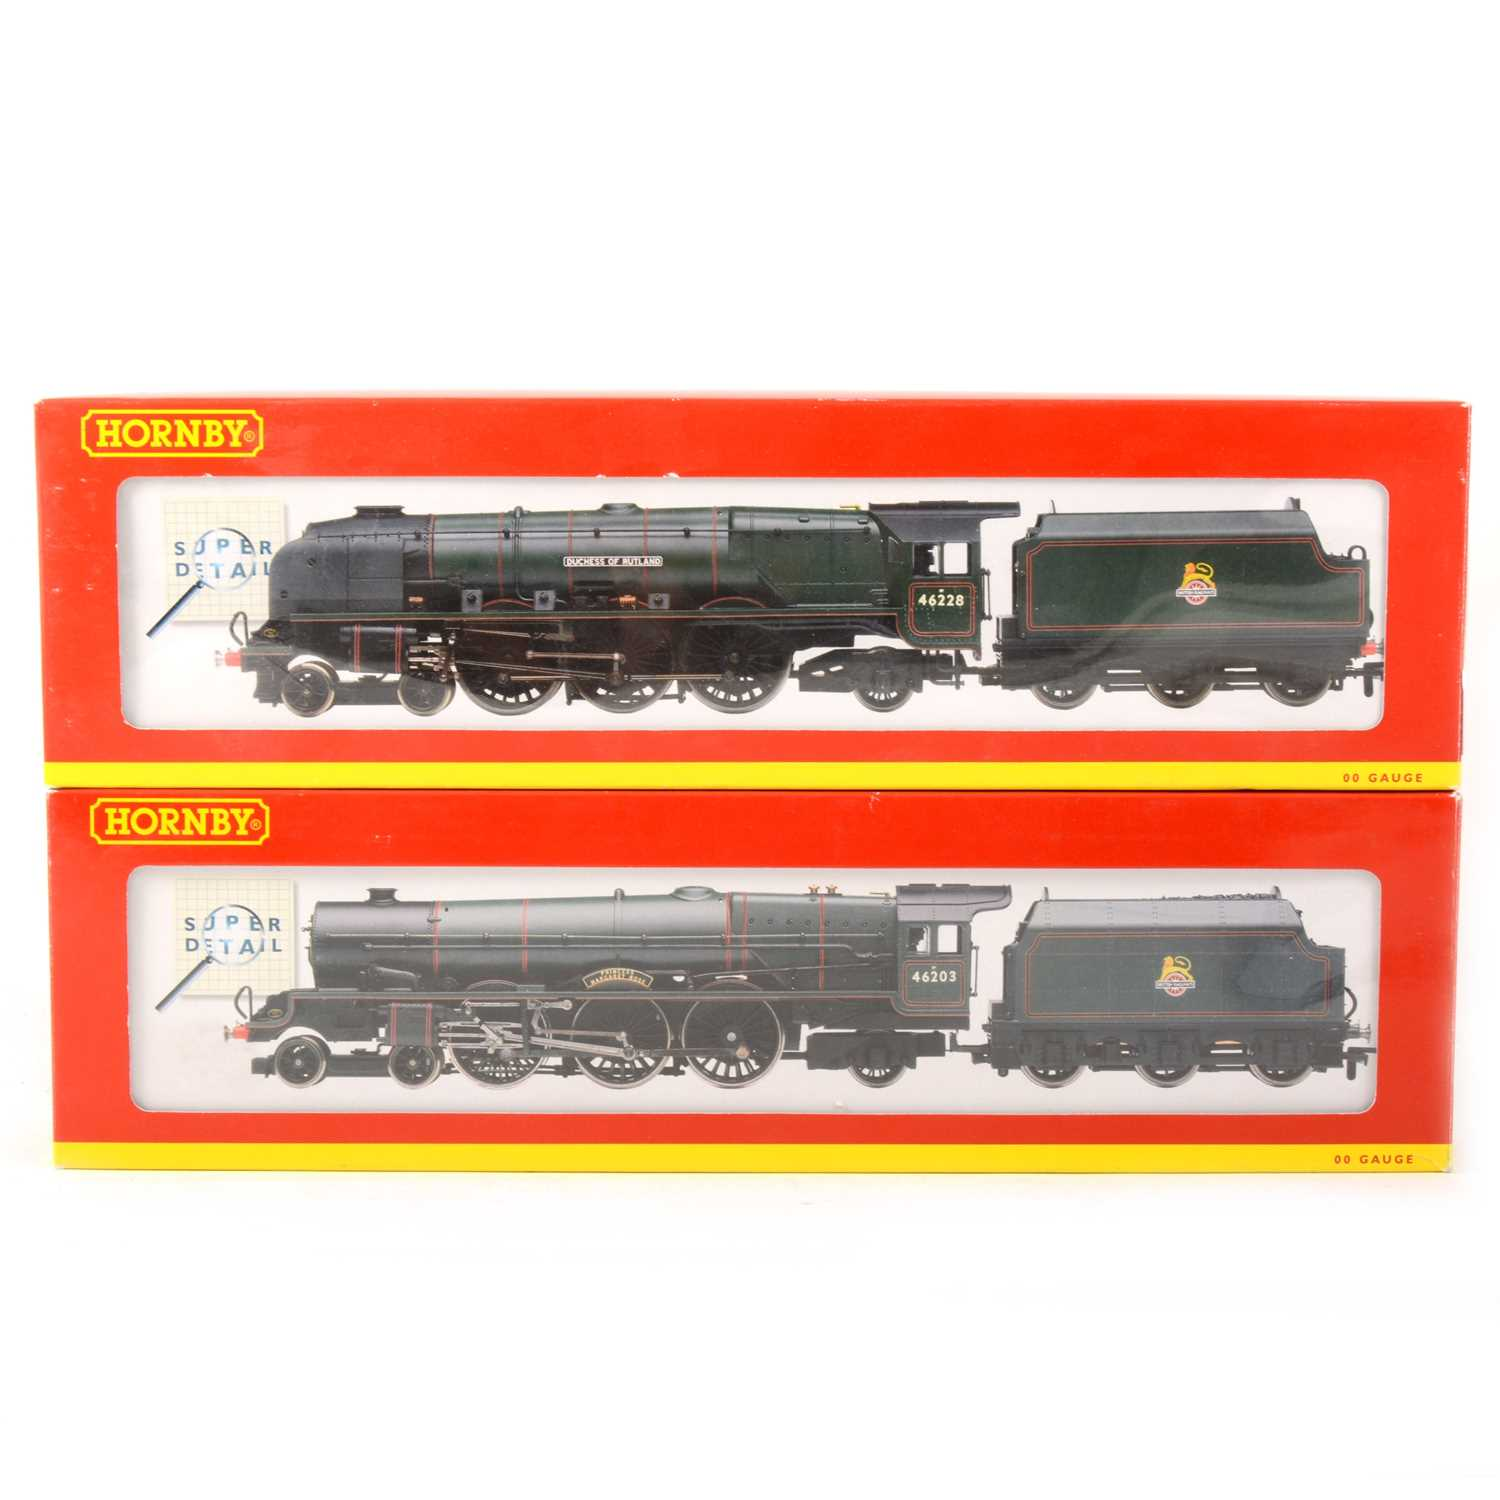 505 - Two Hornby OO gauge model railway locomotives, R2226 'Margaret Rose', R2231 'Duchess of Rutland'.